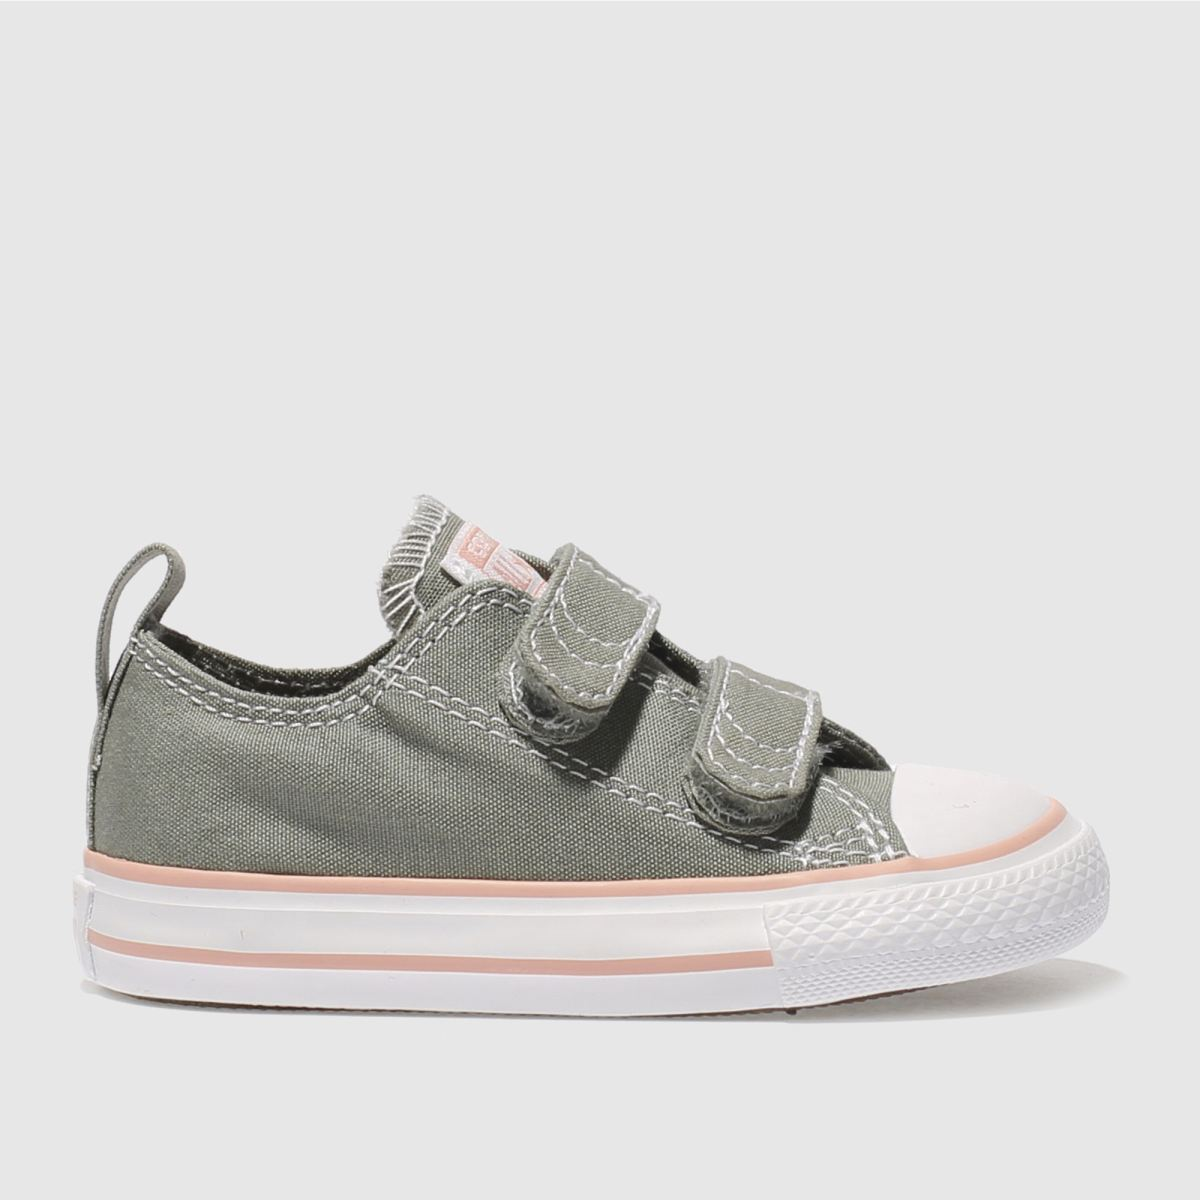 Converse Khaki Chuck Taylor All Star Lo 2v Girls Toddler Trainers